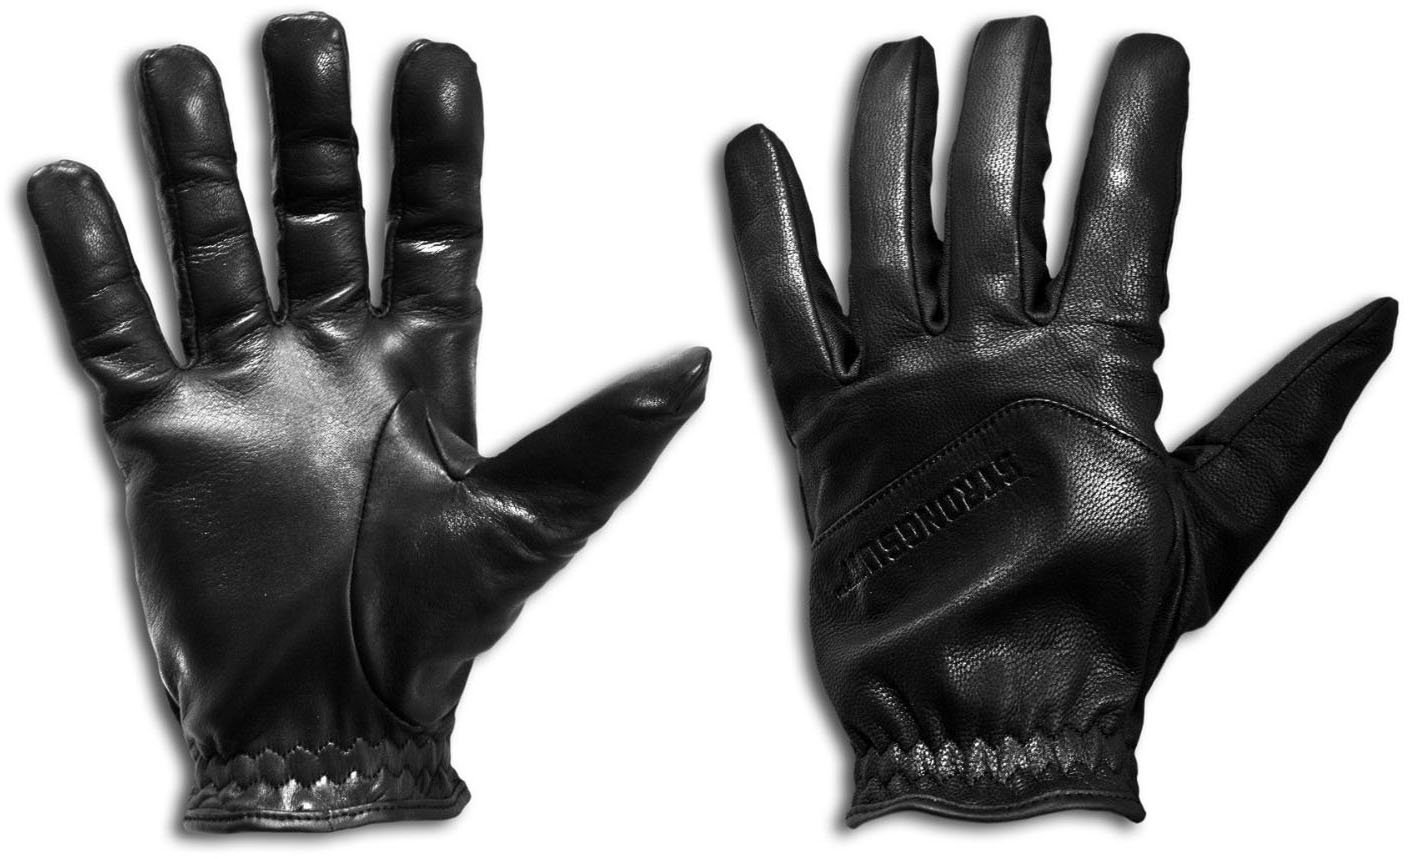 StrongSuit 40300-L Duty Everyday Tactical Gloves, Large